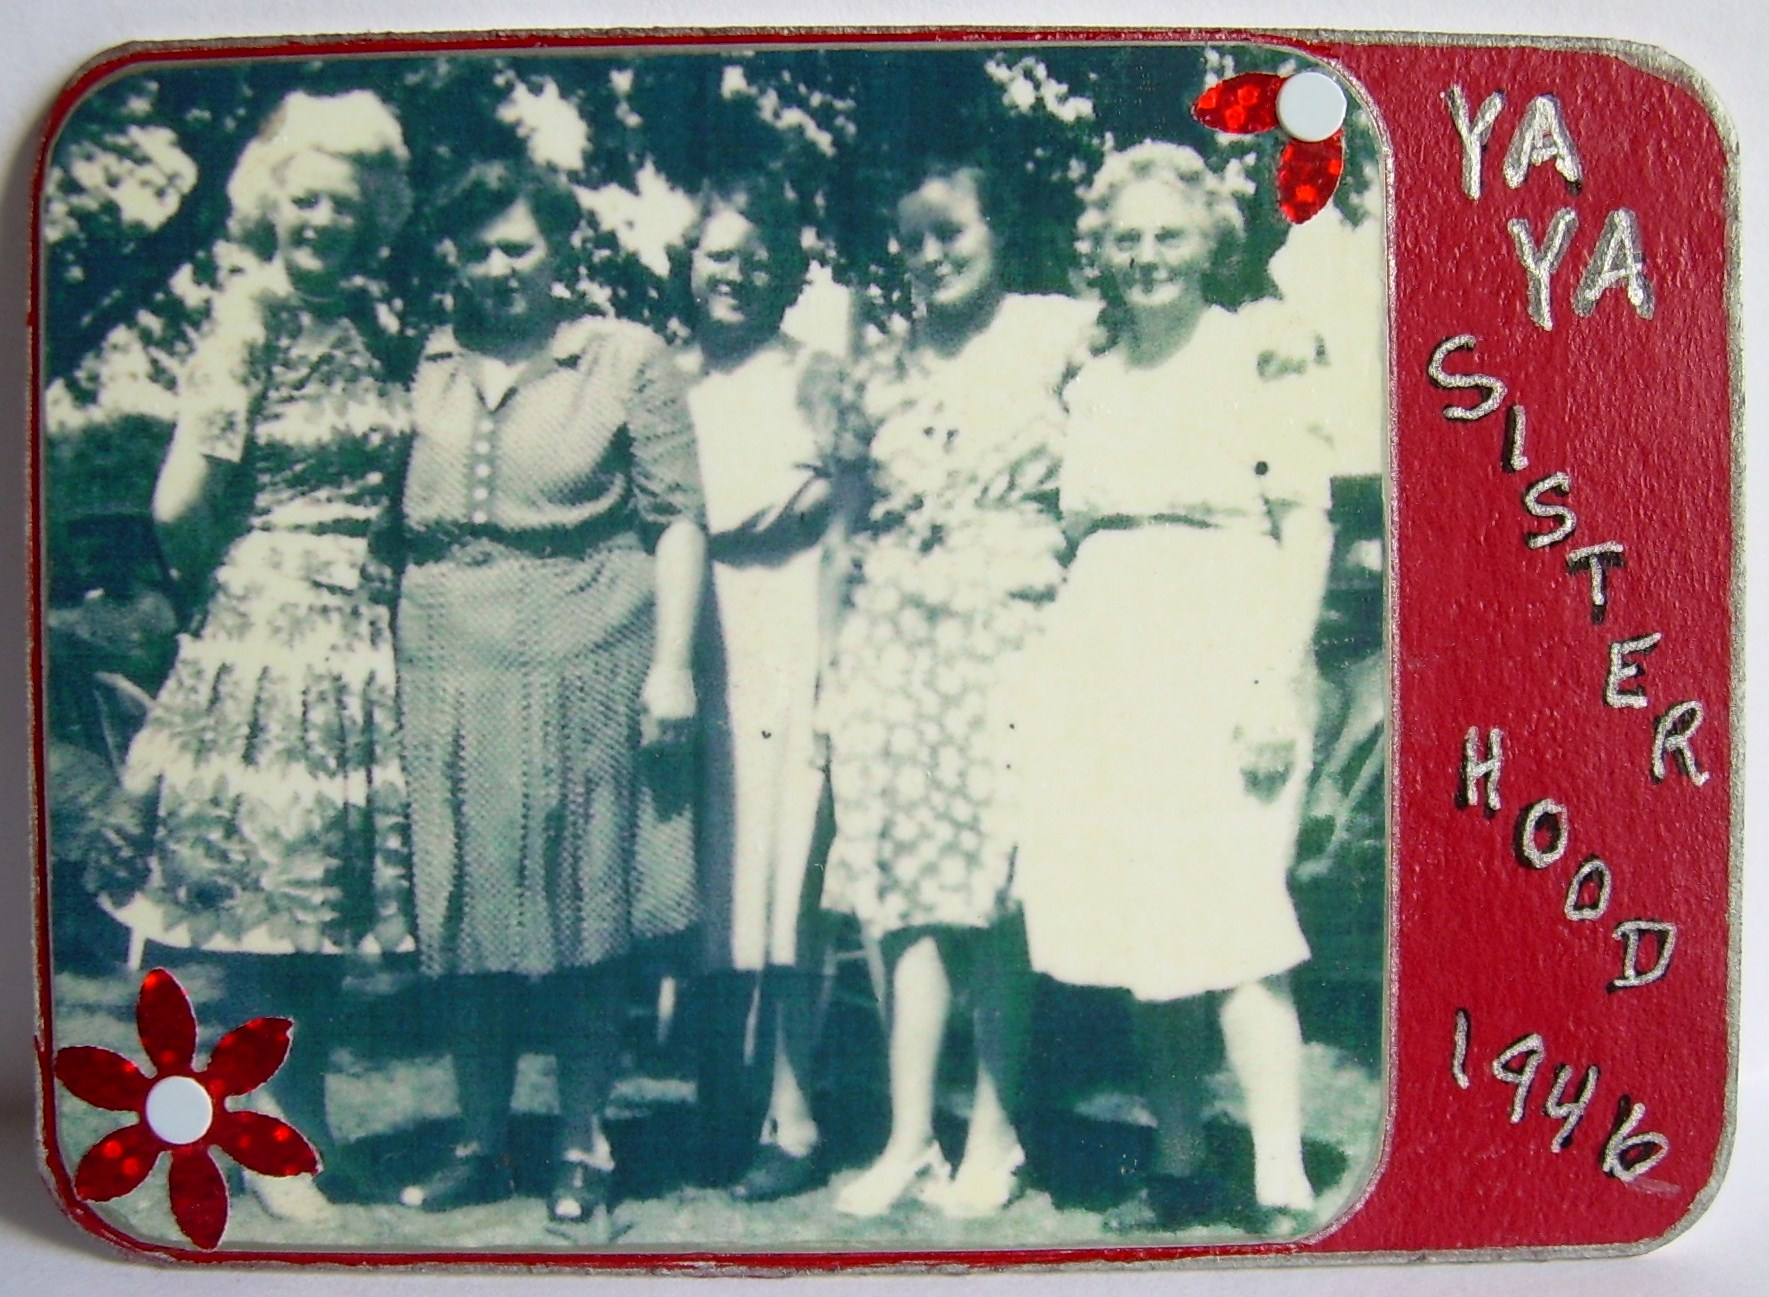 #6, YA YA Sisterhood, 1946, $5.00, Ship $1.00 (These 5 are actual sisters!)